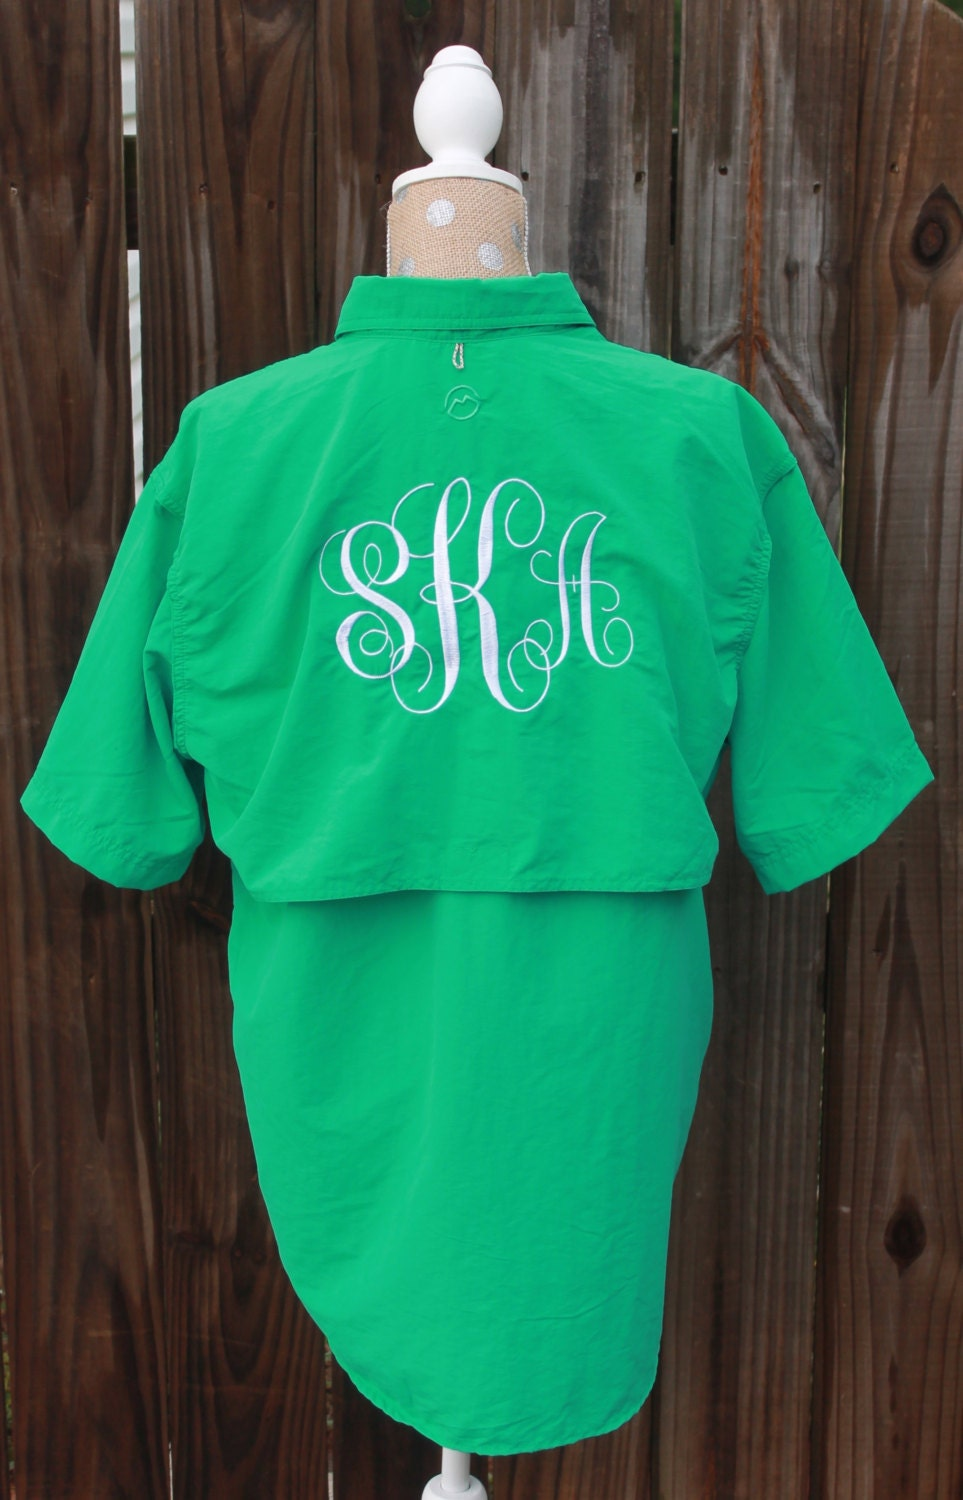 Women 39 s monogrammed fishing shirt swimsuit cover up by for Monogram fishing shirt